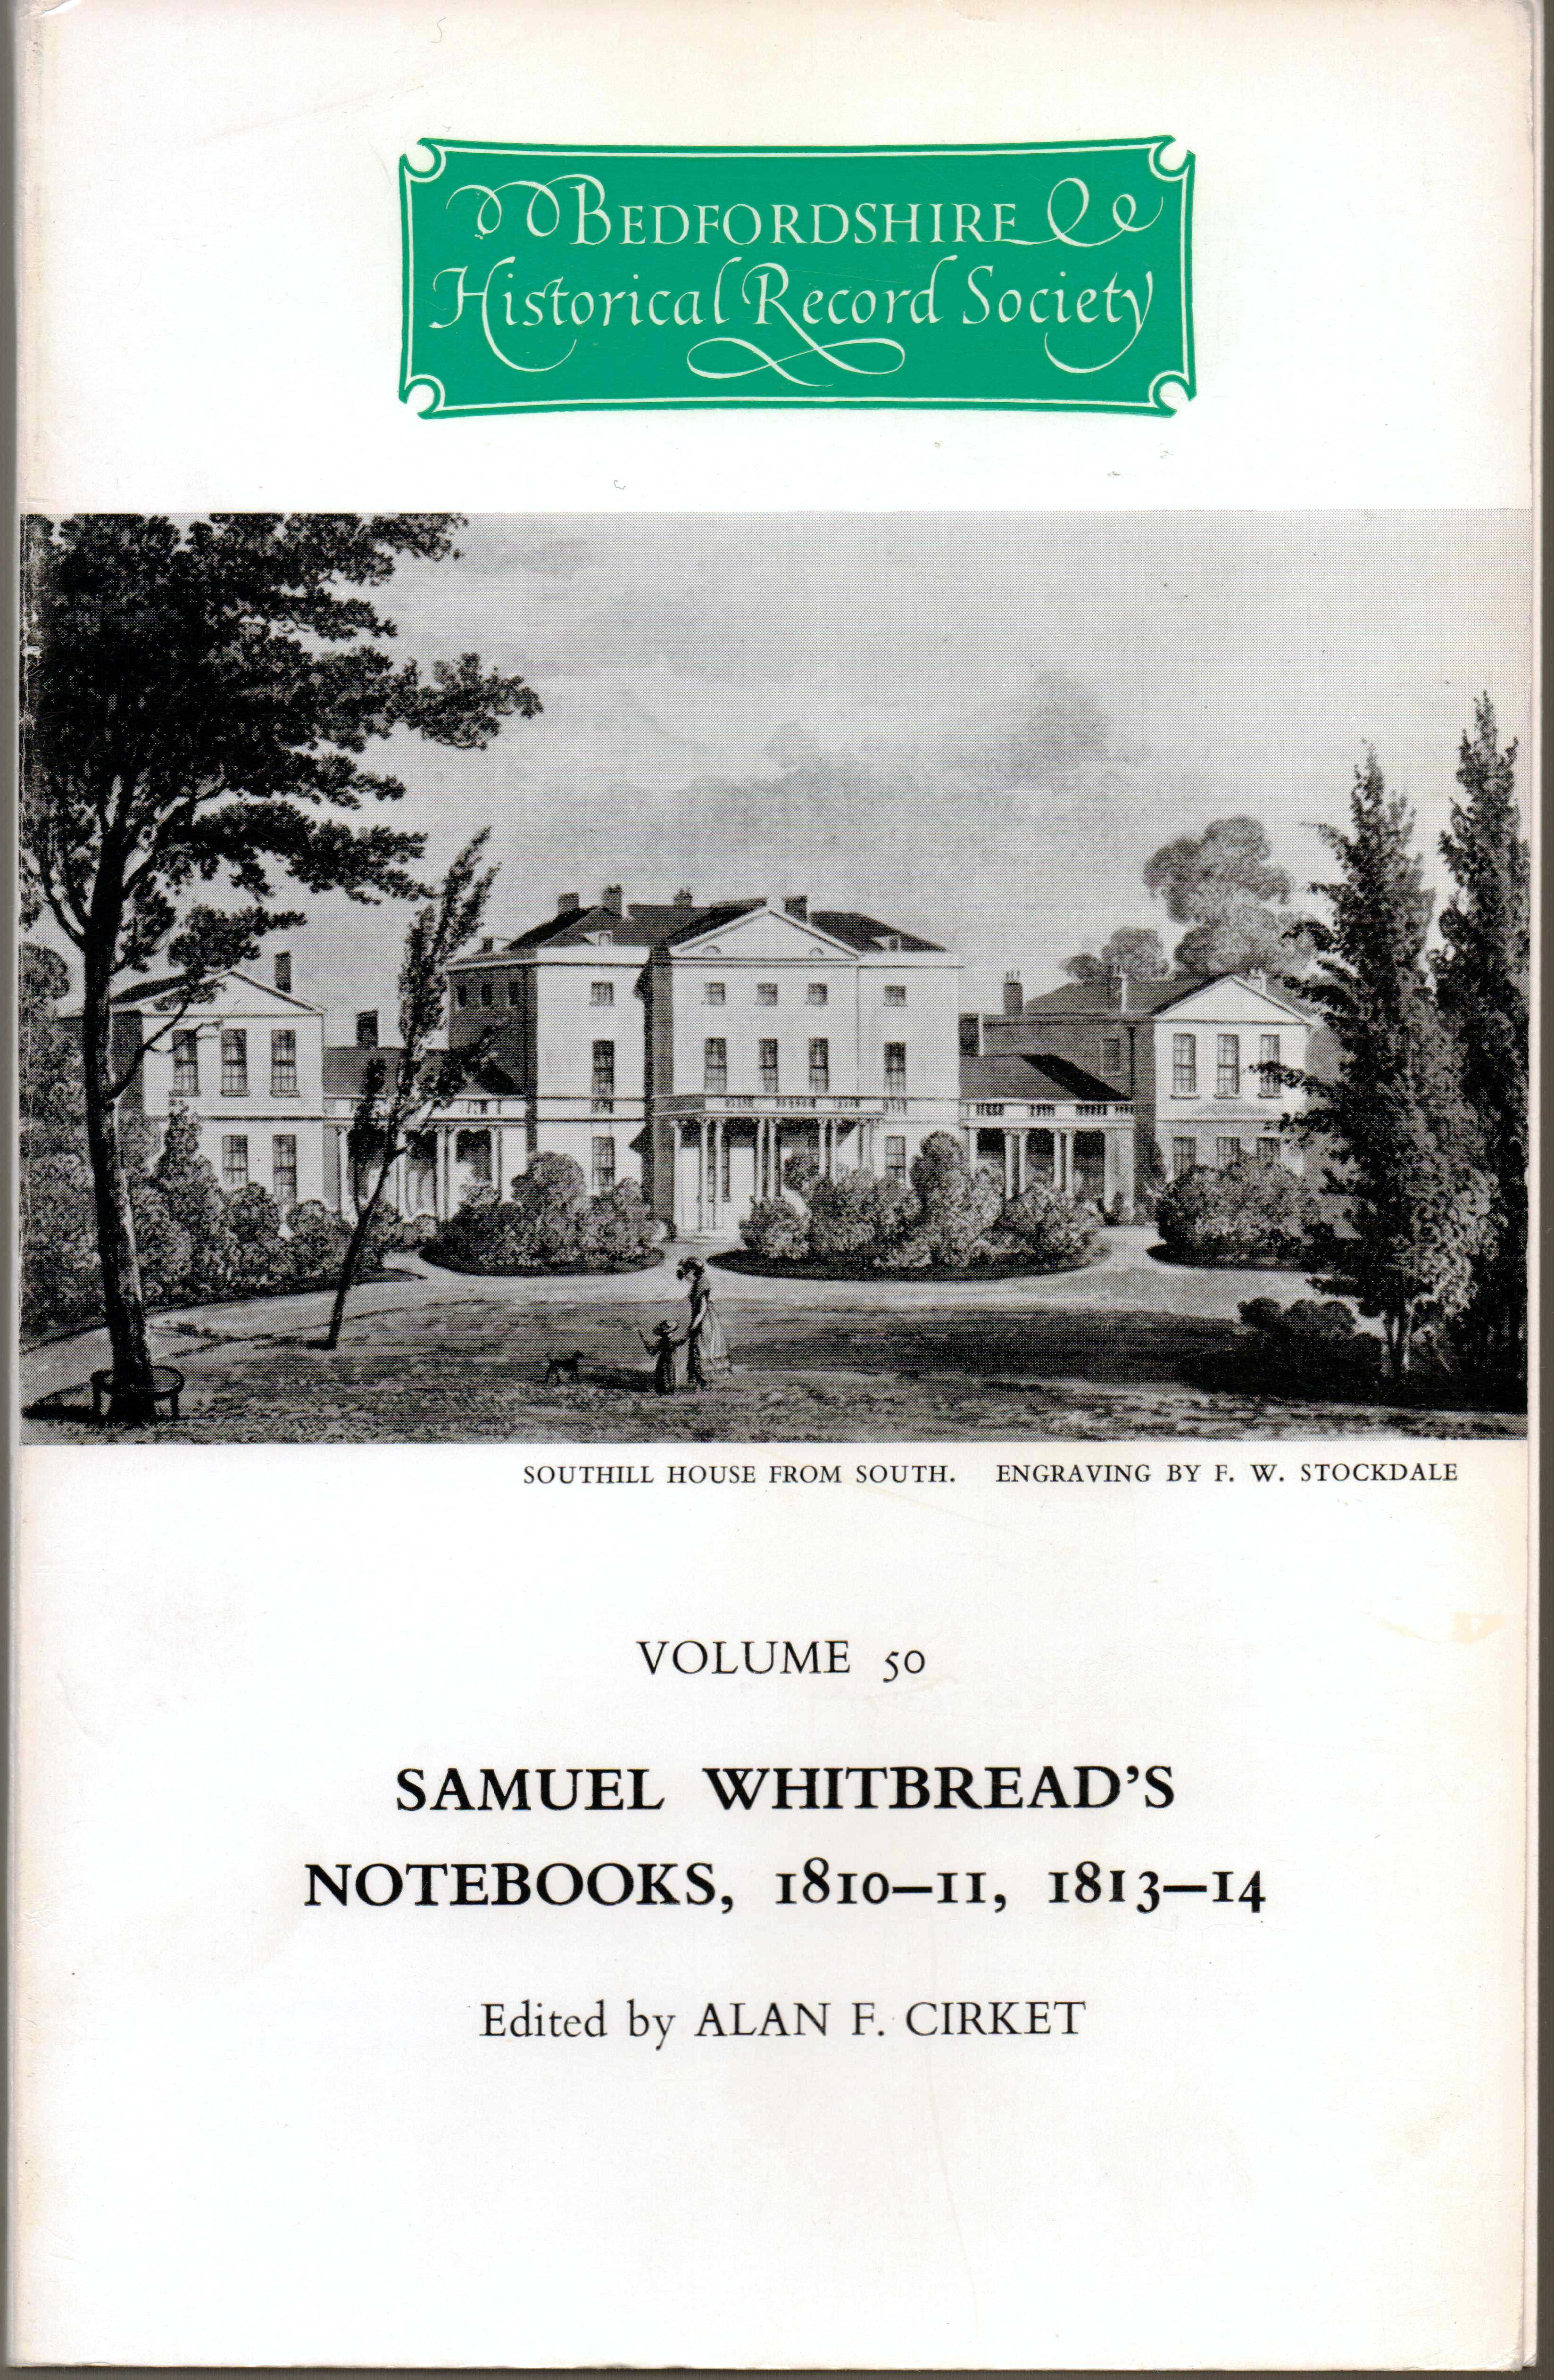 Samuel Whitbread's notebooks 1810-11, 1813-14